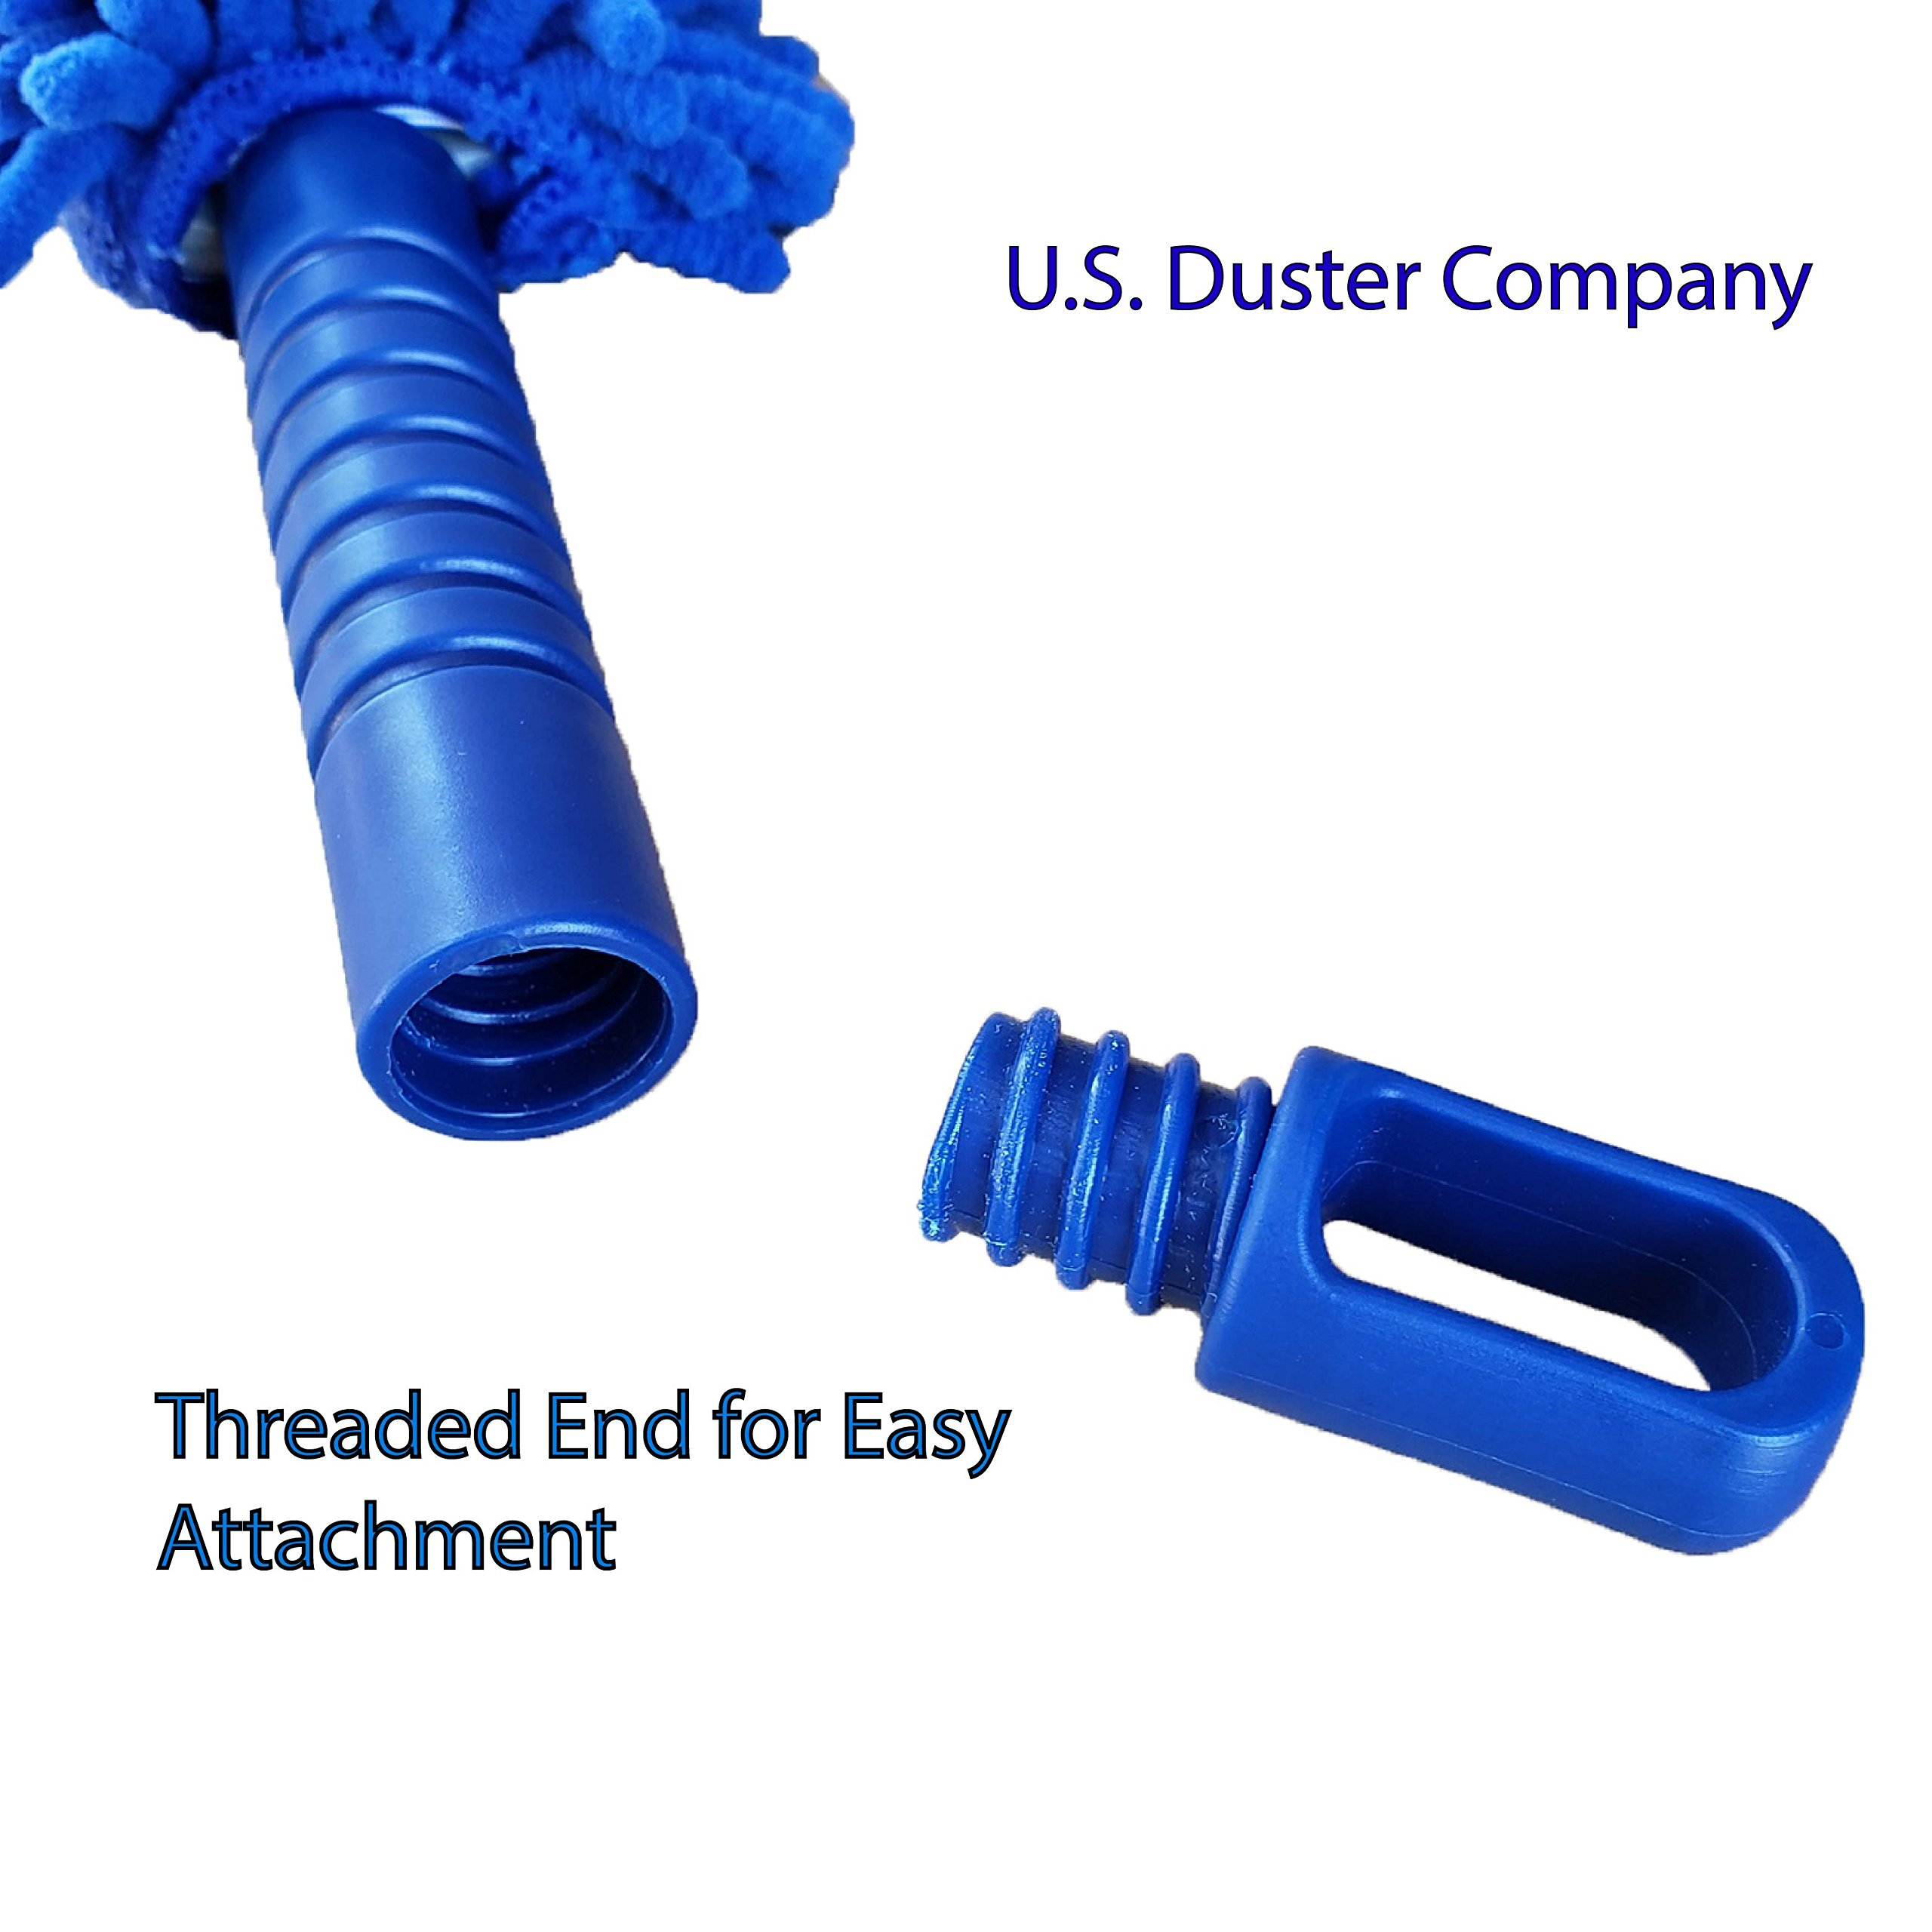 U.S. Duster Company Chenille Extension Duster, Aluminum Extension Rod, Extend 18-20 feet Cleaning High Ceilings, Cathedral Ceilings by U.S. DUSTER COMPANY DUST FREE SOLUTIONS (Image #3)